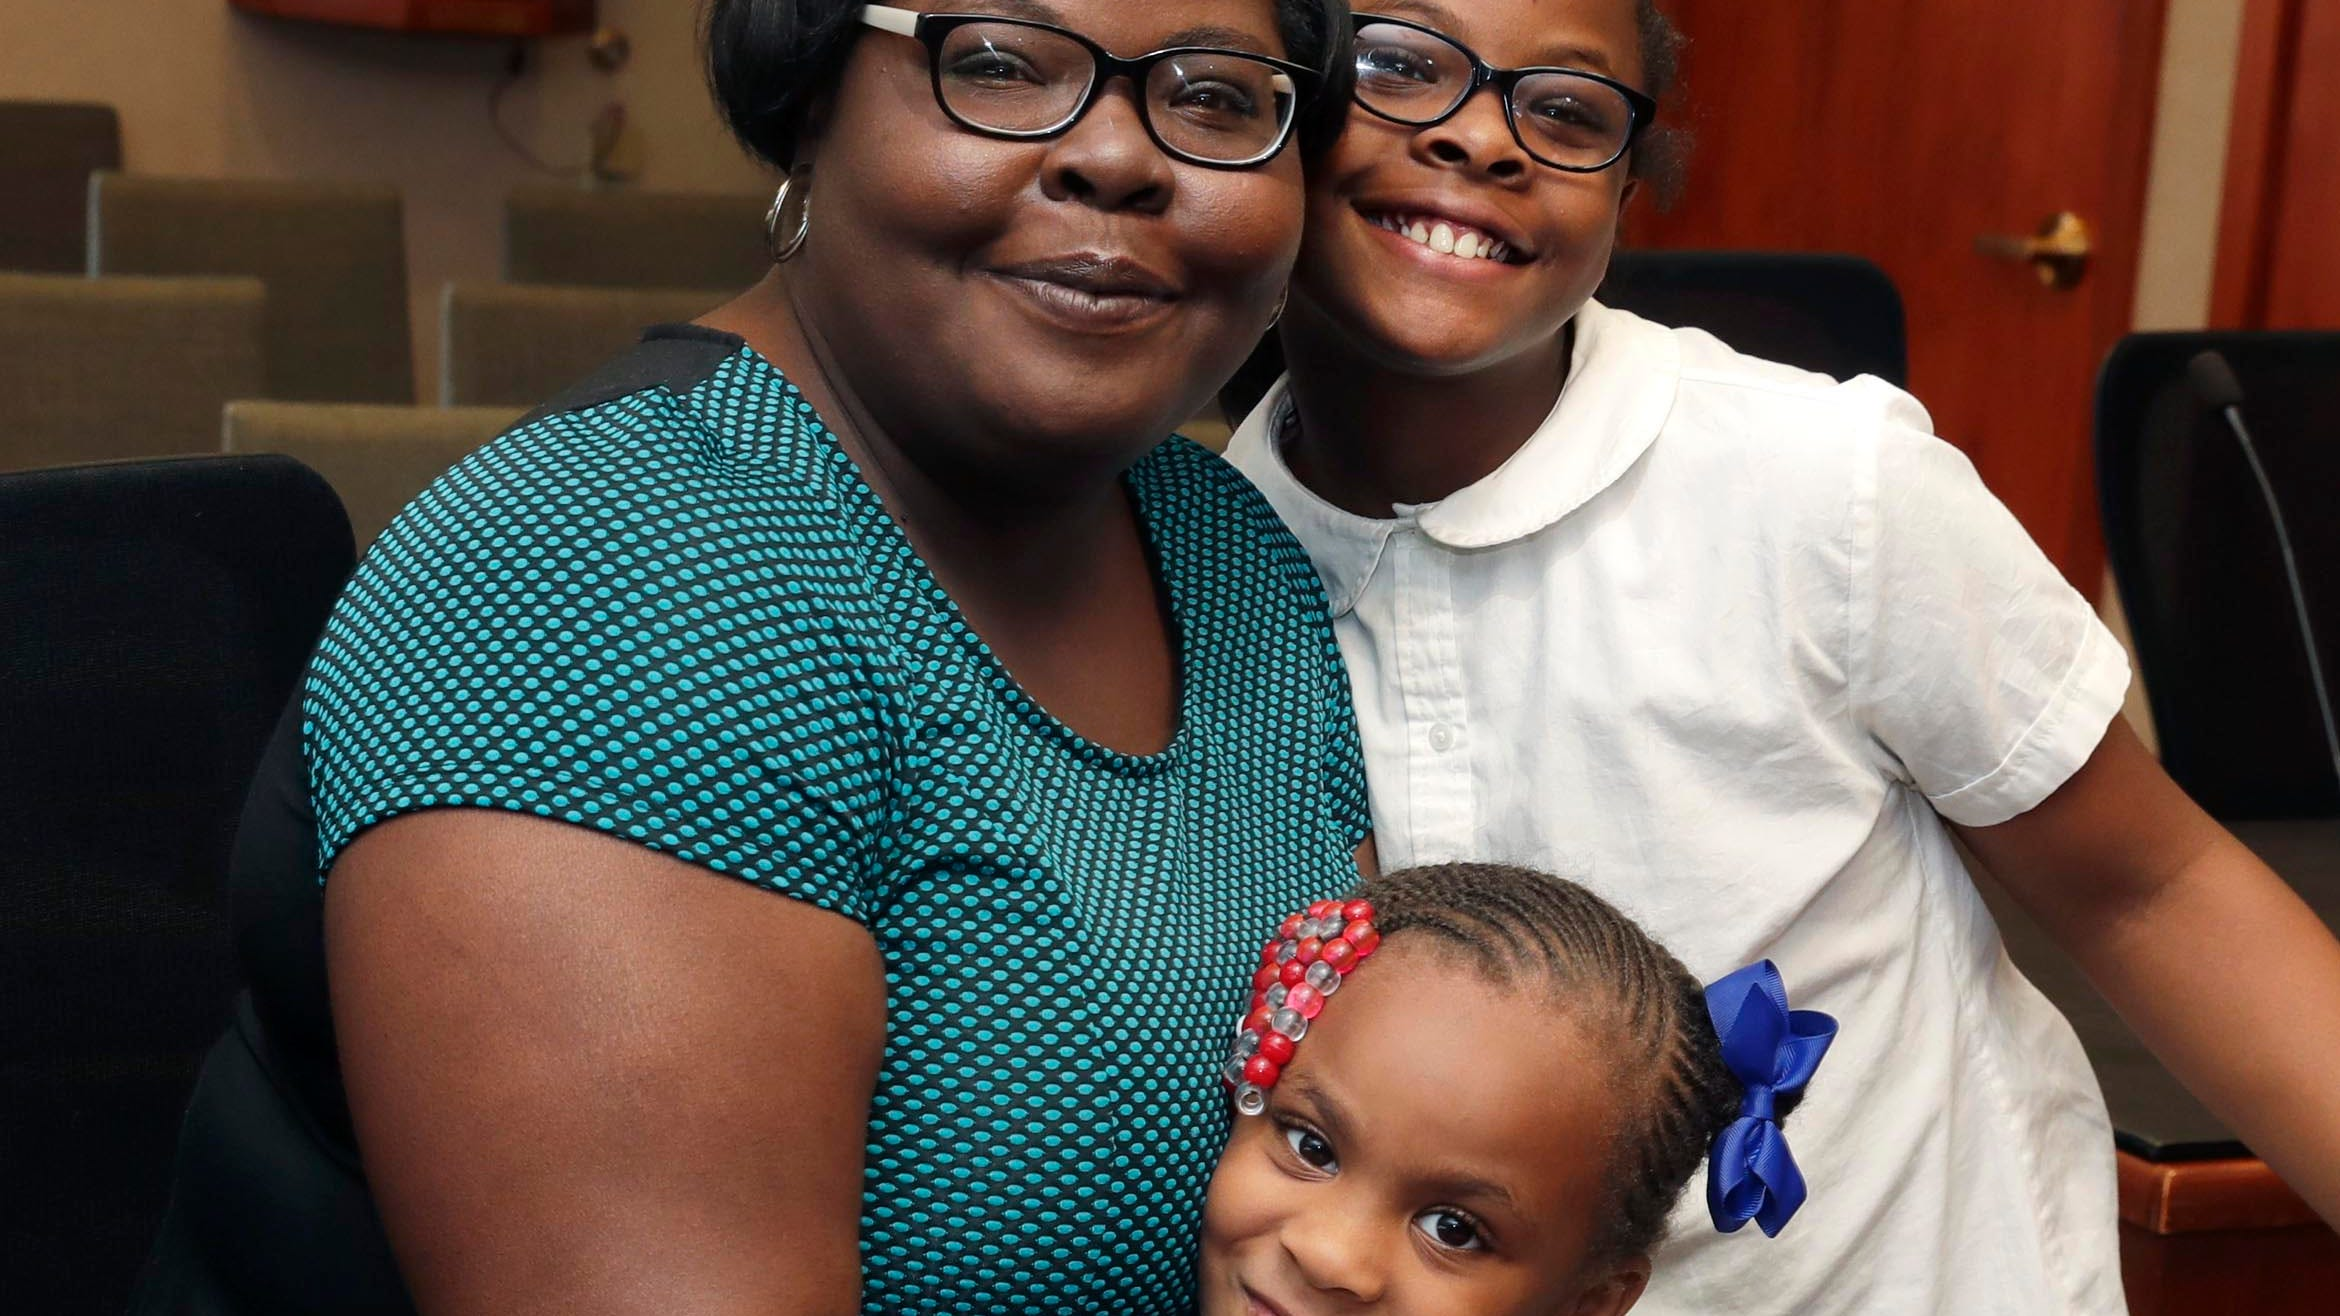 'You have to break generational curses': Single mom overcomes obstacles on way to MATC graduation stage